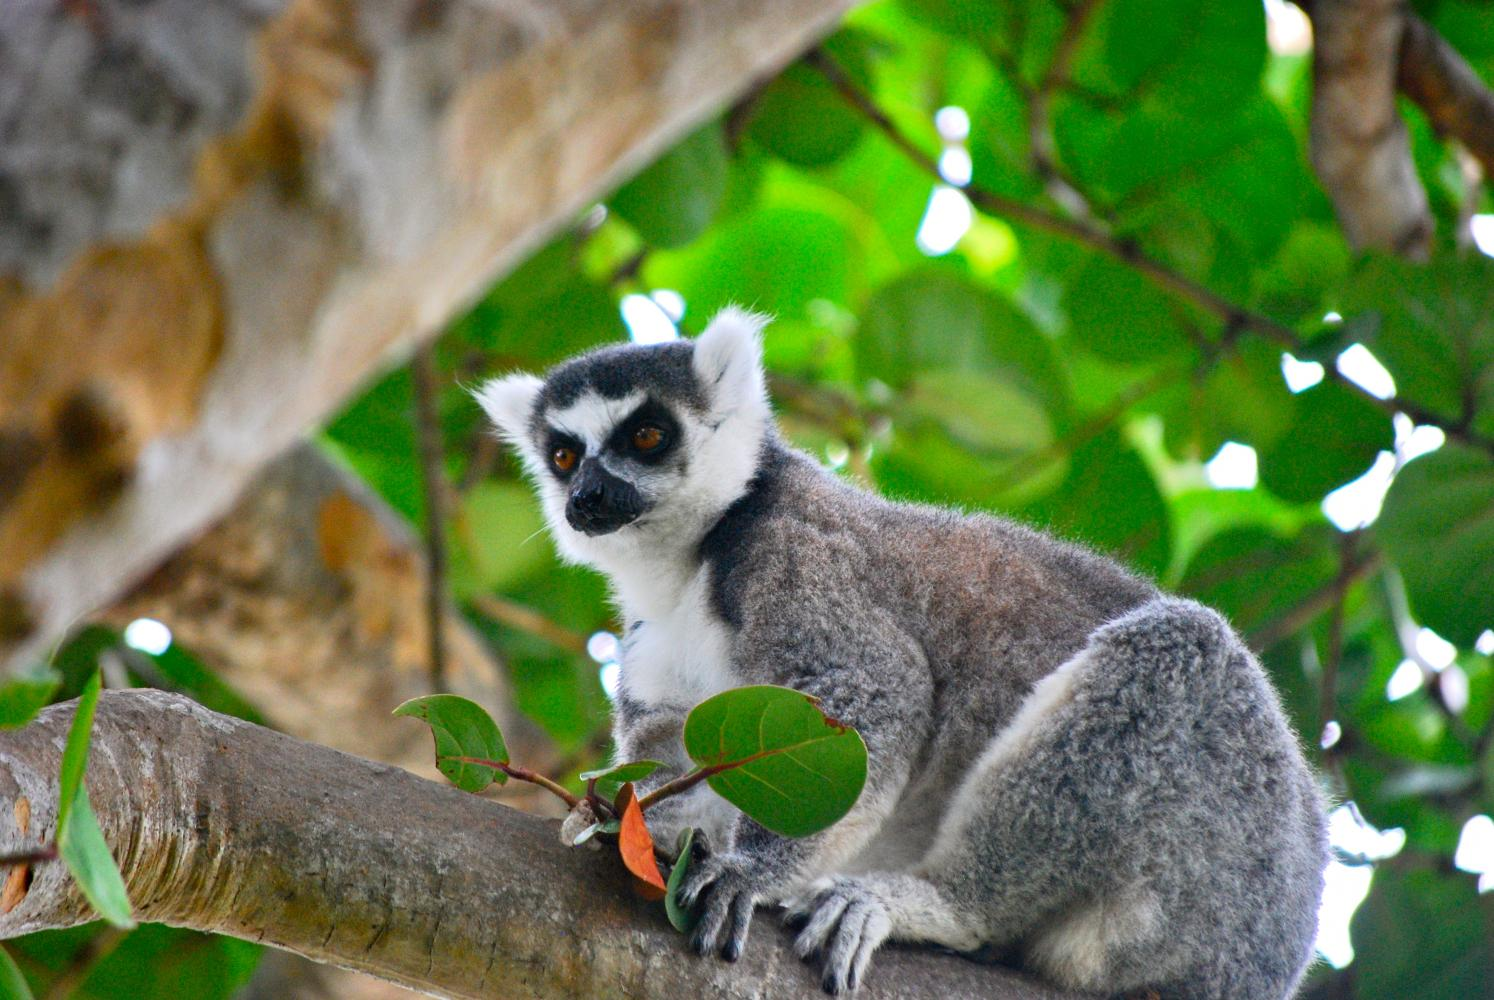 Lemurs are among the most protected and endangered primate species in the world due to their exclusivity to Madagascar.